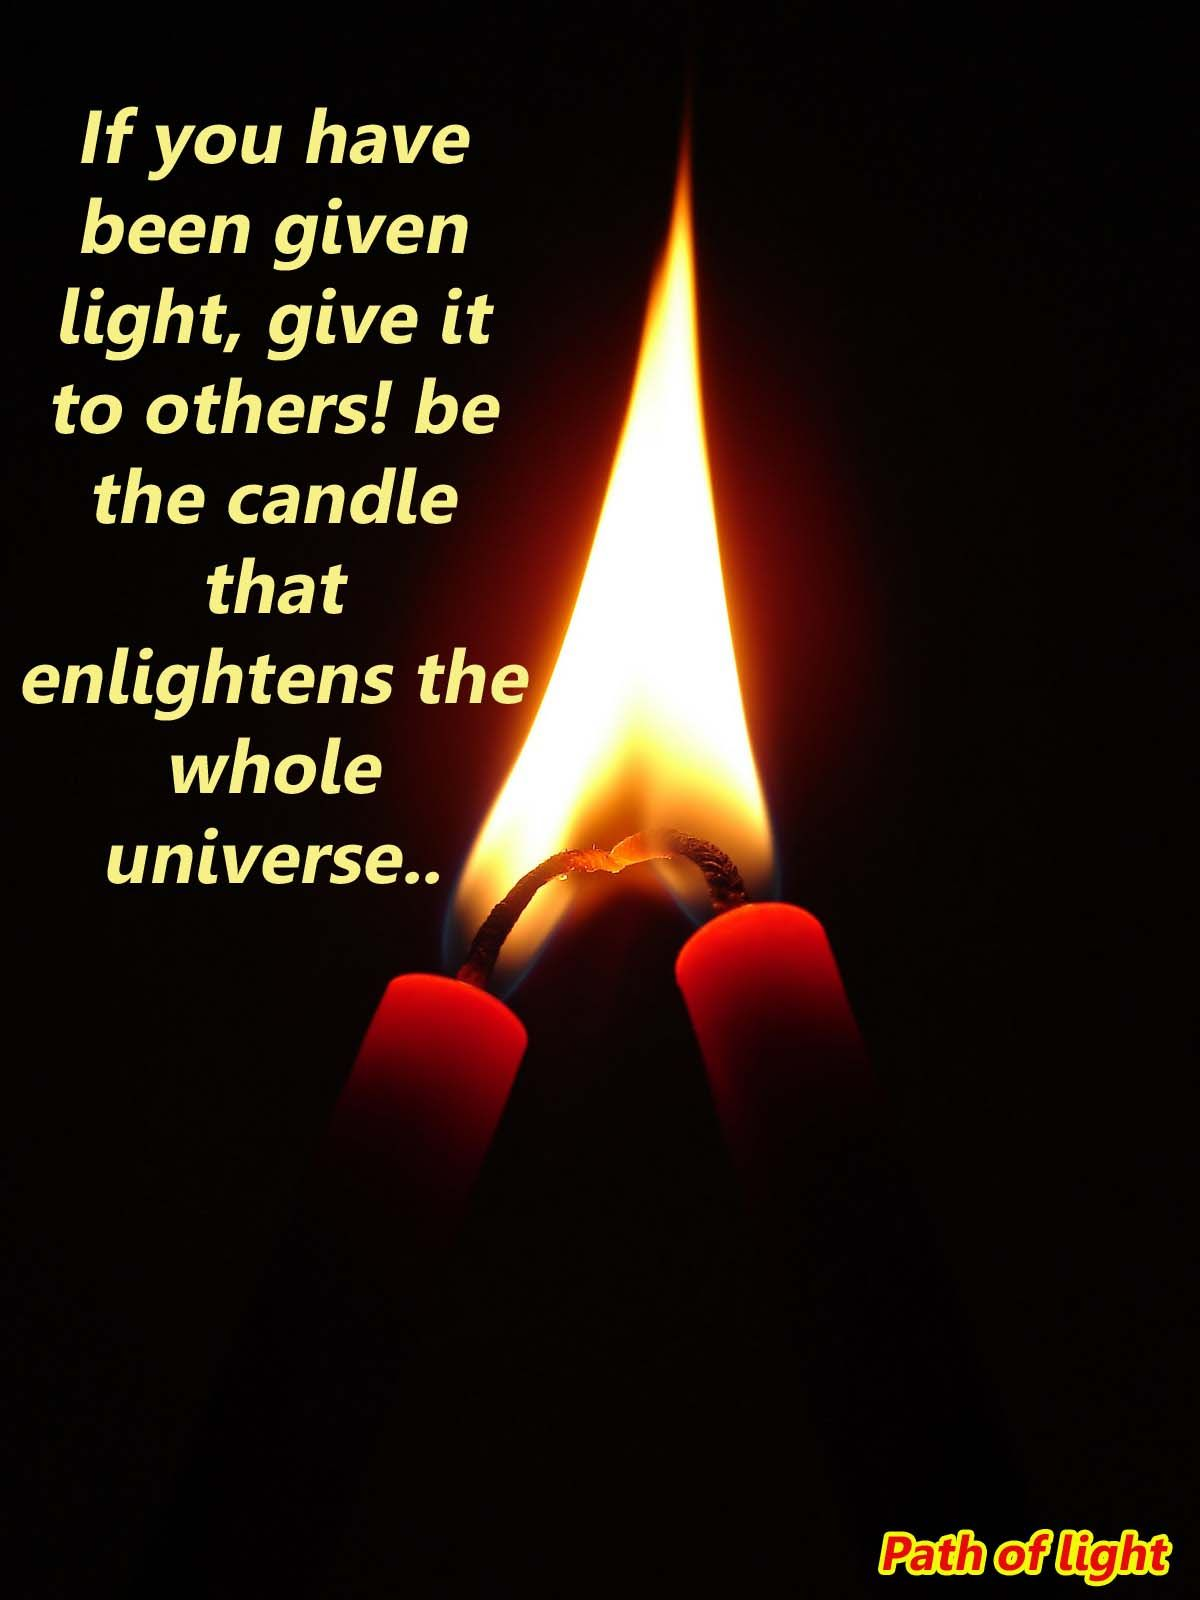 Share Light With Images Light Inspirational Quotes Inspiration